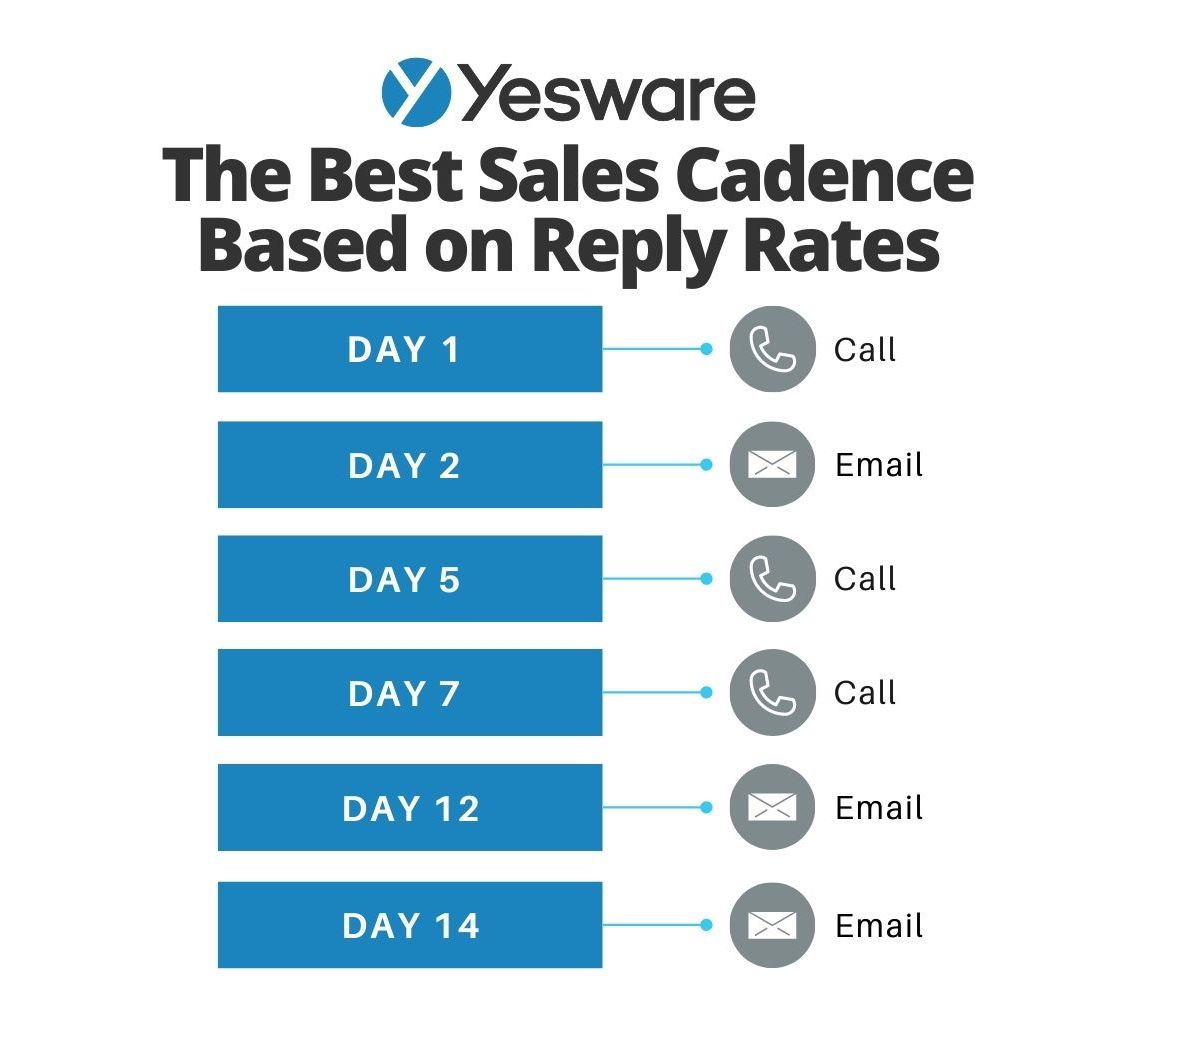 The best sales cadence based on reply rates